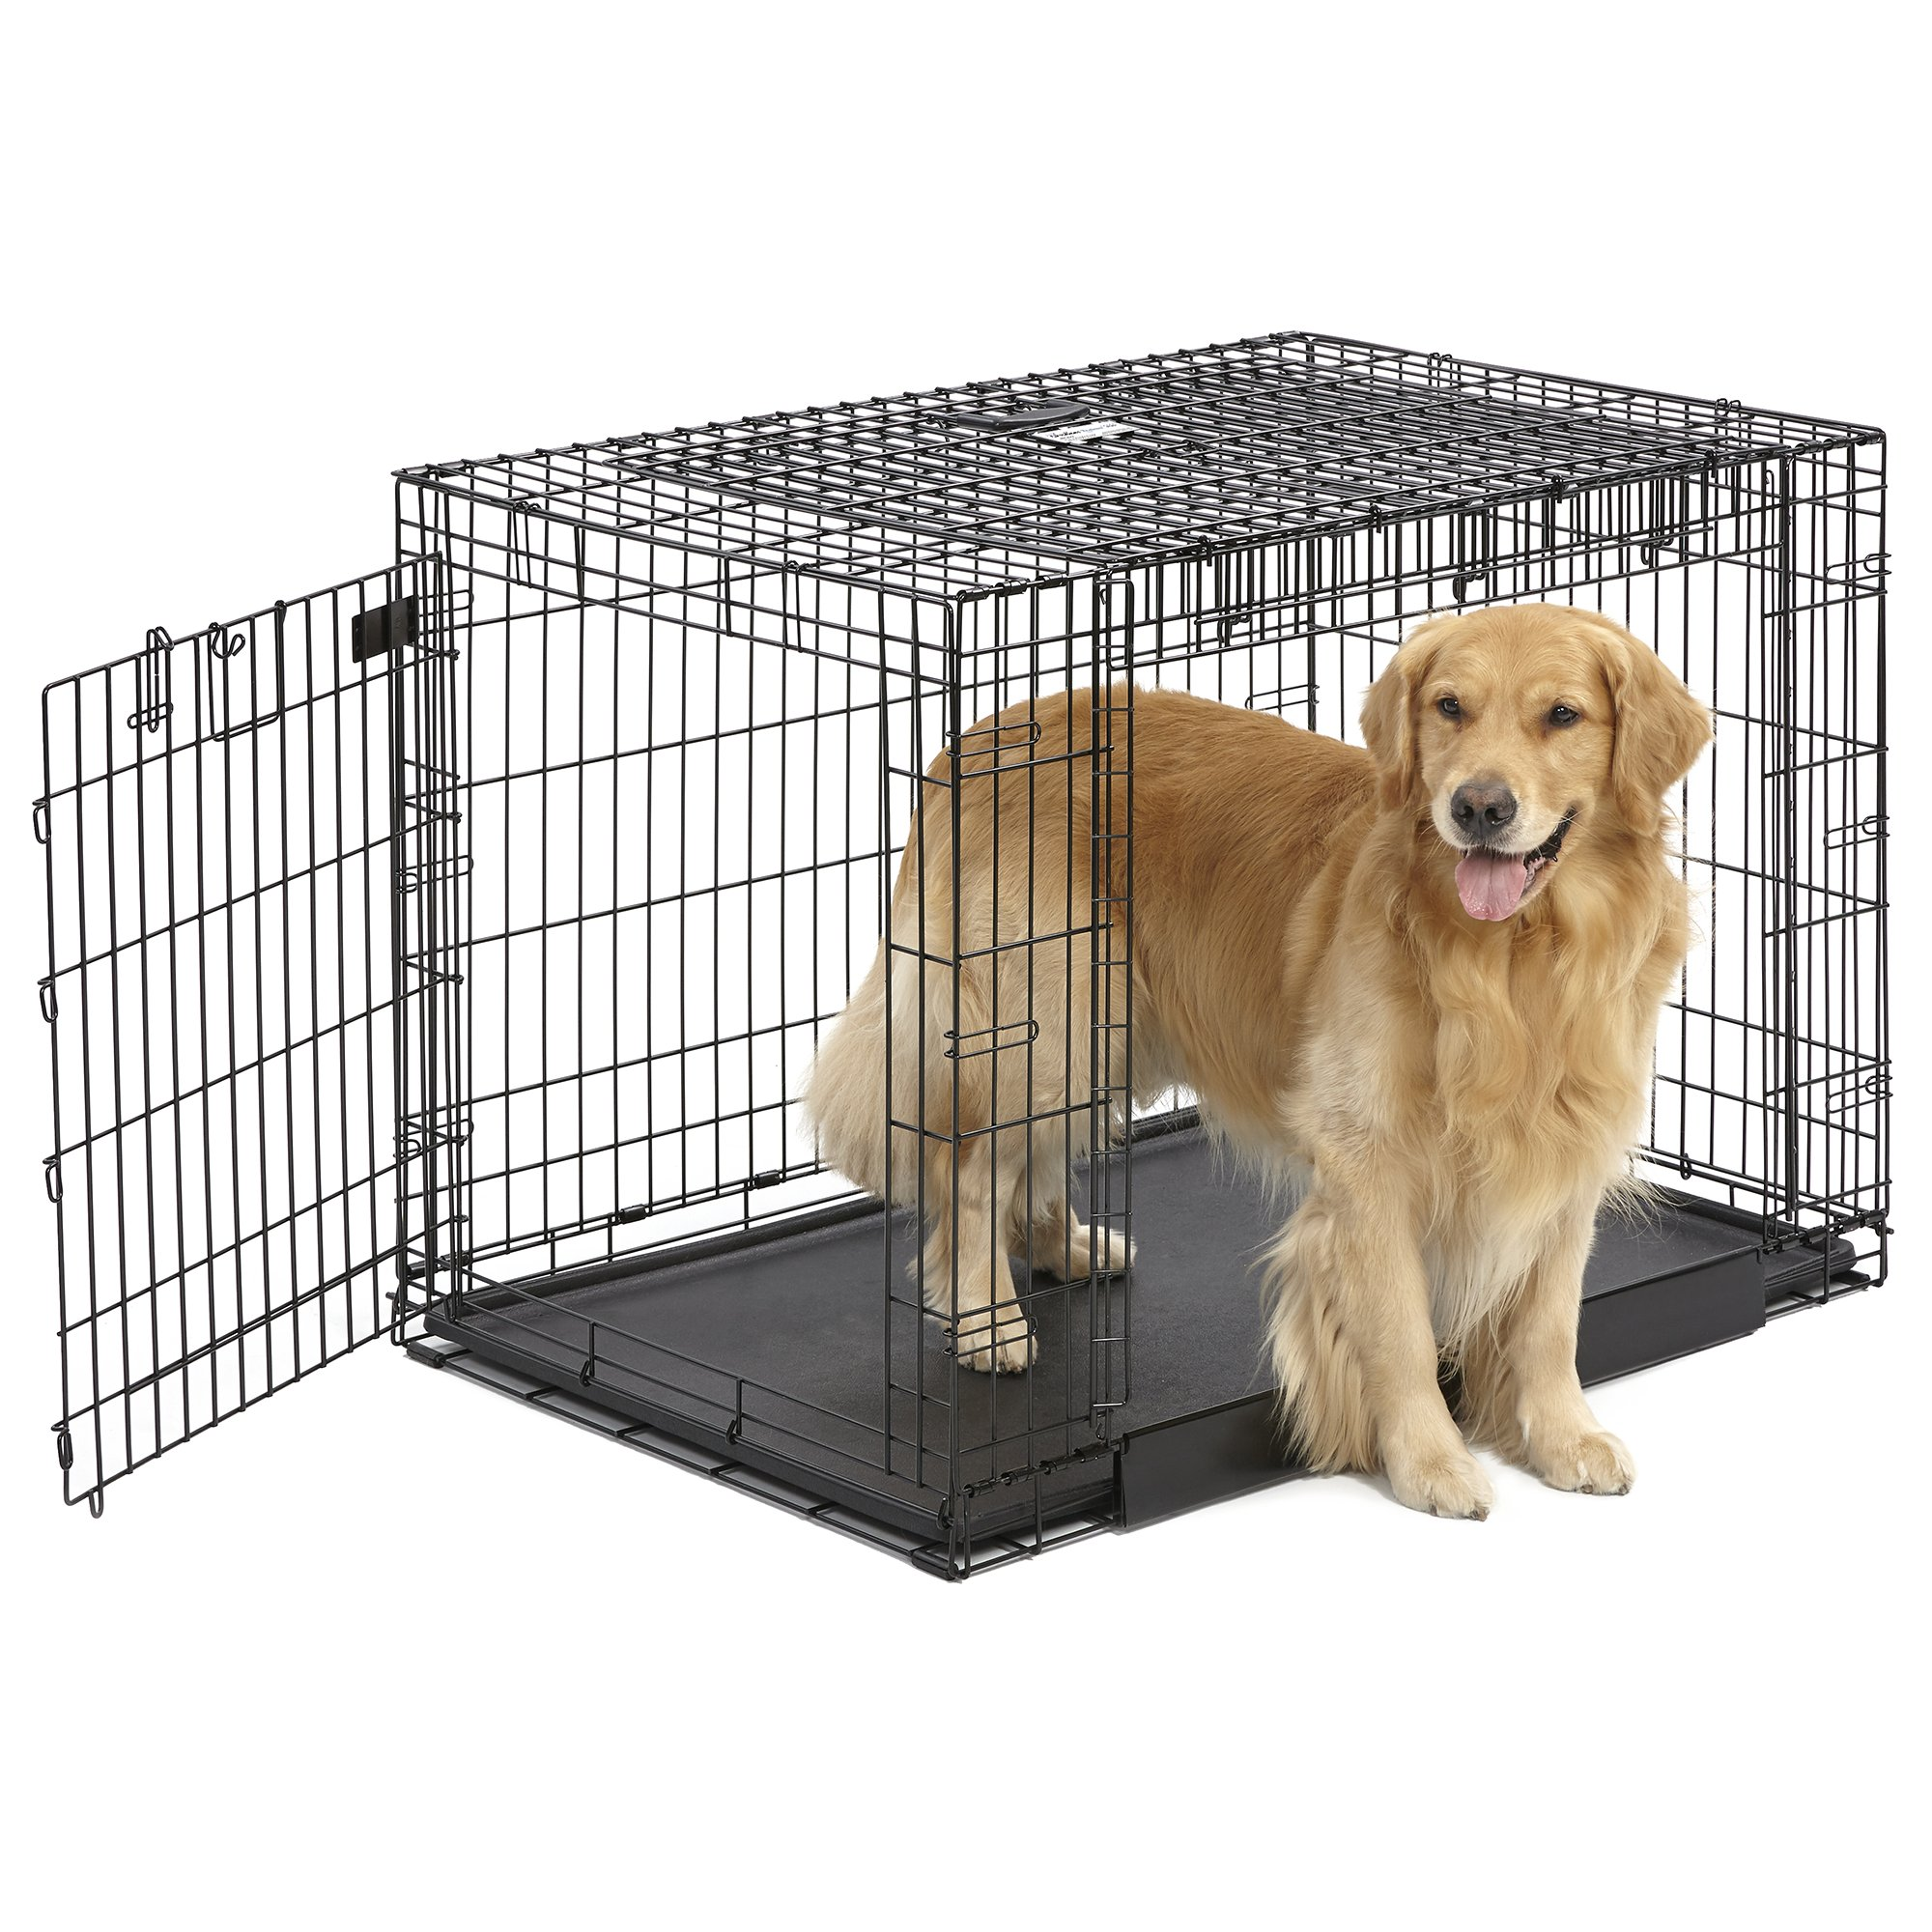 Midwest ovation trainer double door dog crate petco store for Double door with dog door